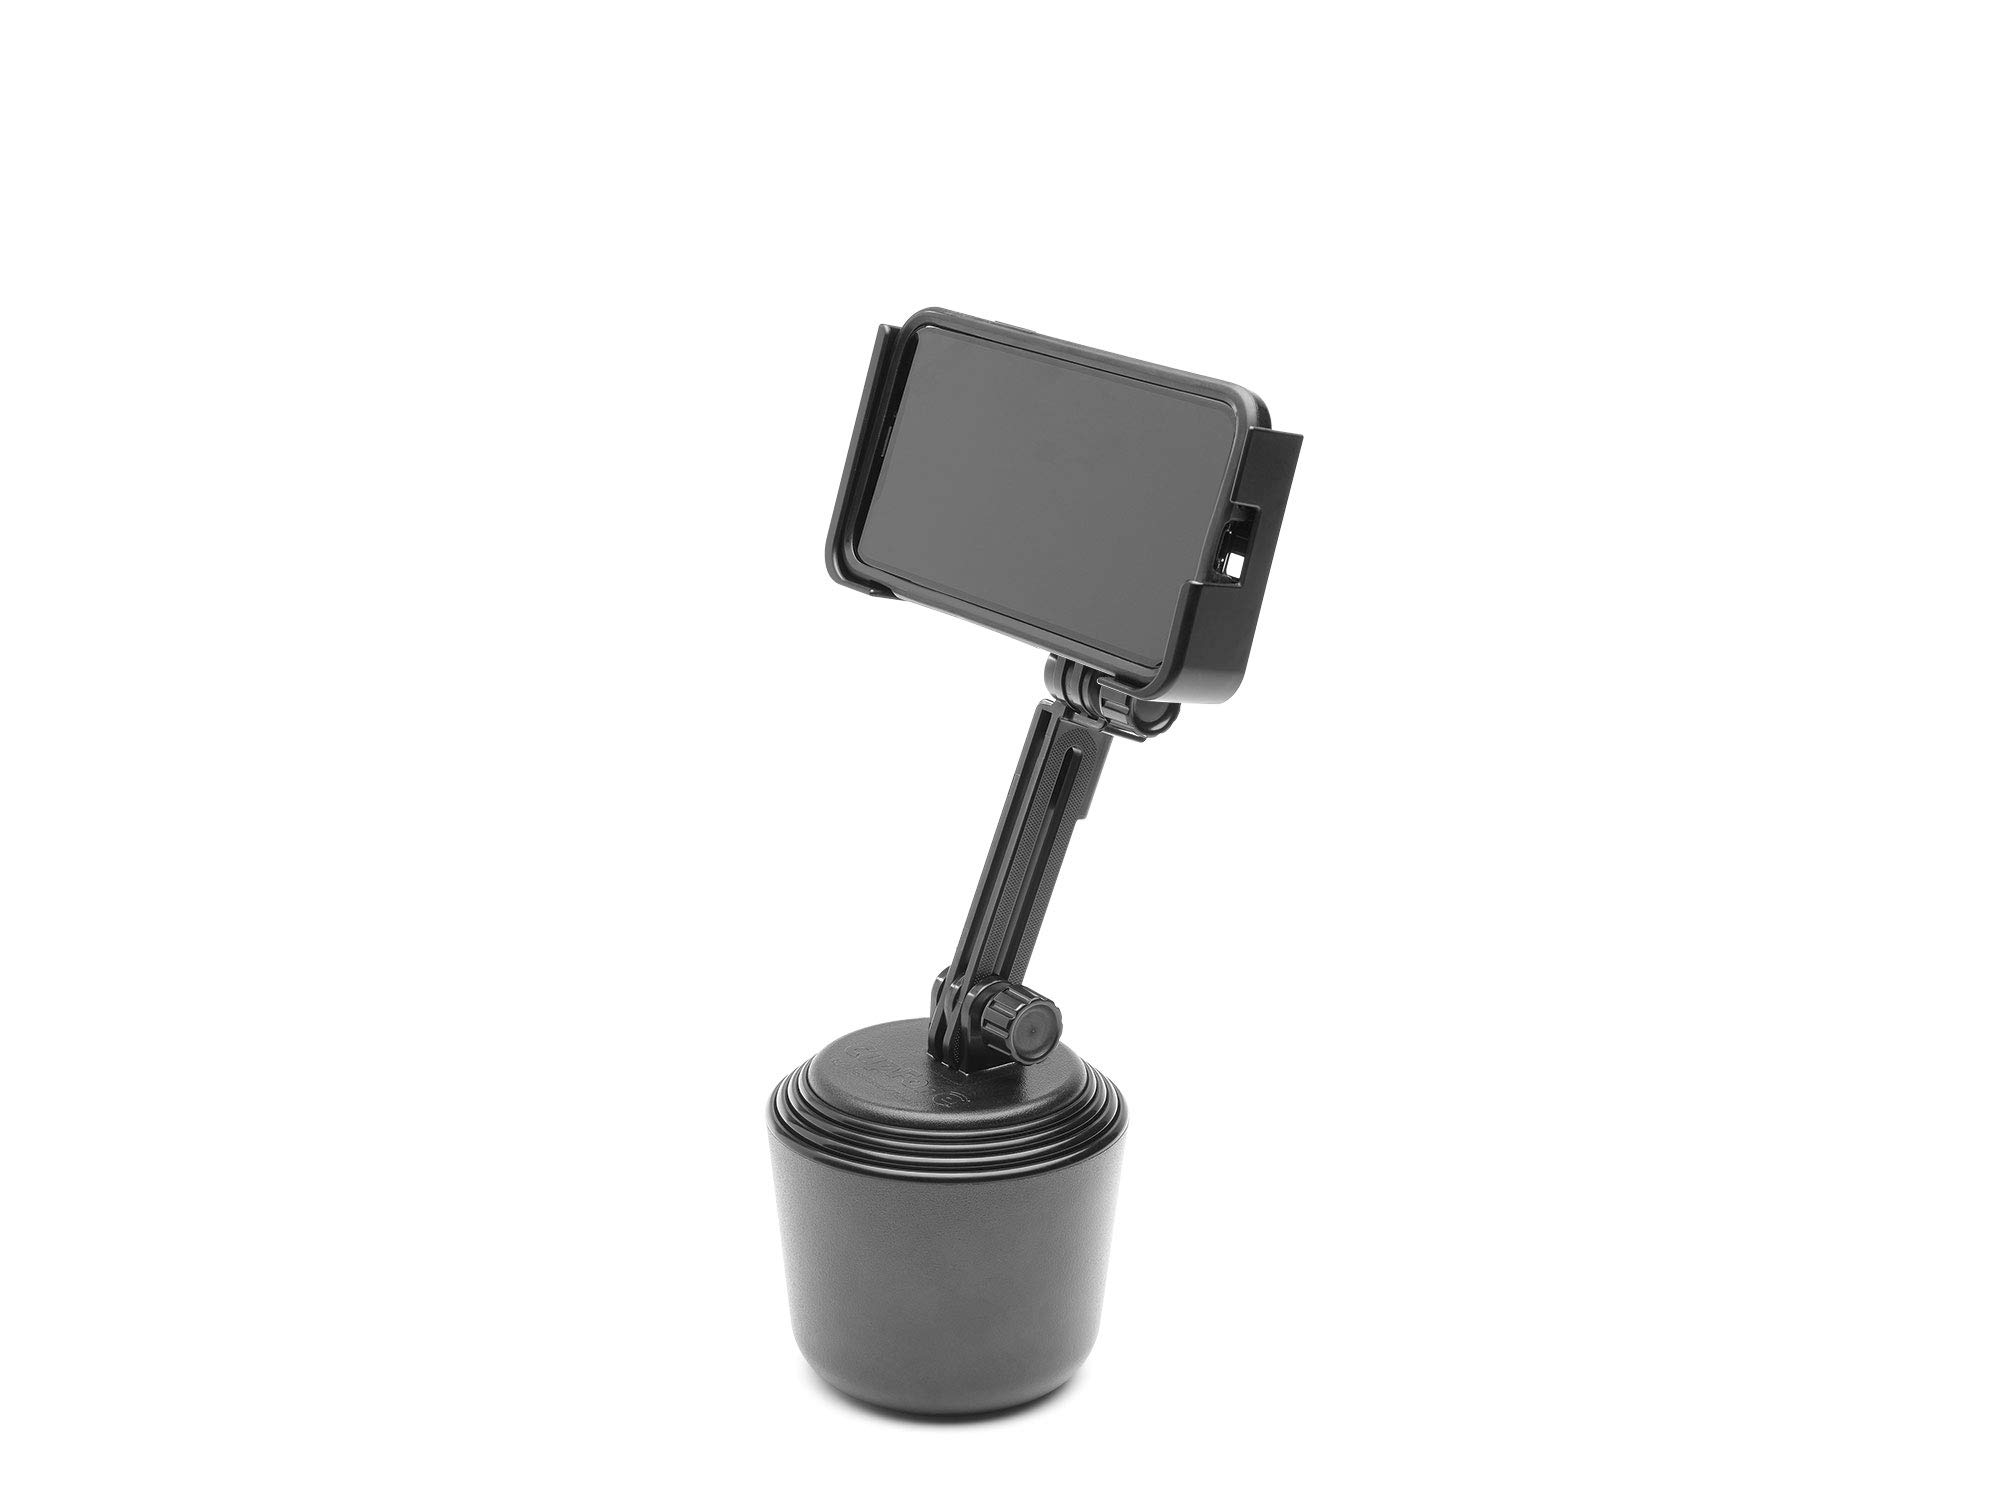 Weathertech Cupfone Xl With Extension Cell Phone Holder For Car Phone Mount Universal Cup Holder Fit Buy Online In Turkey At Desertcart Productid 167370474